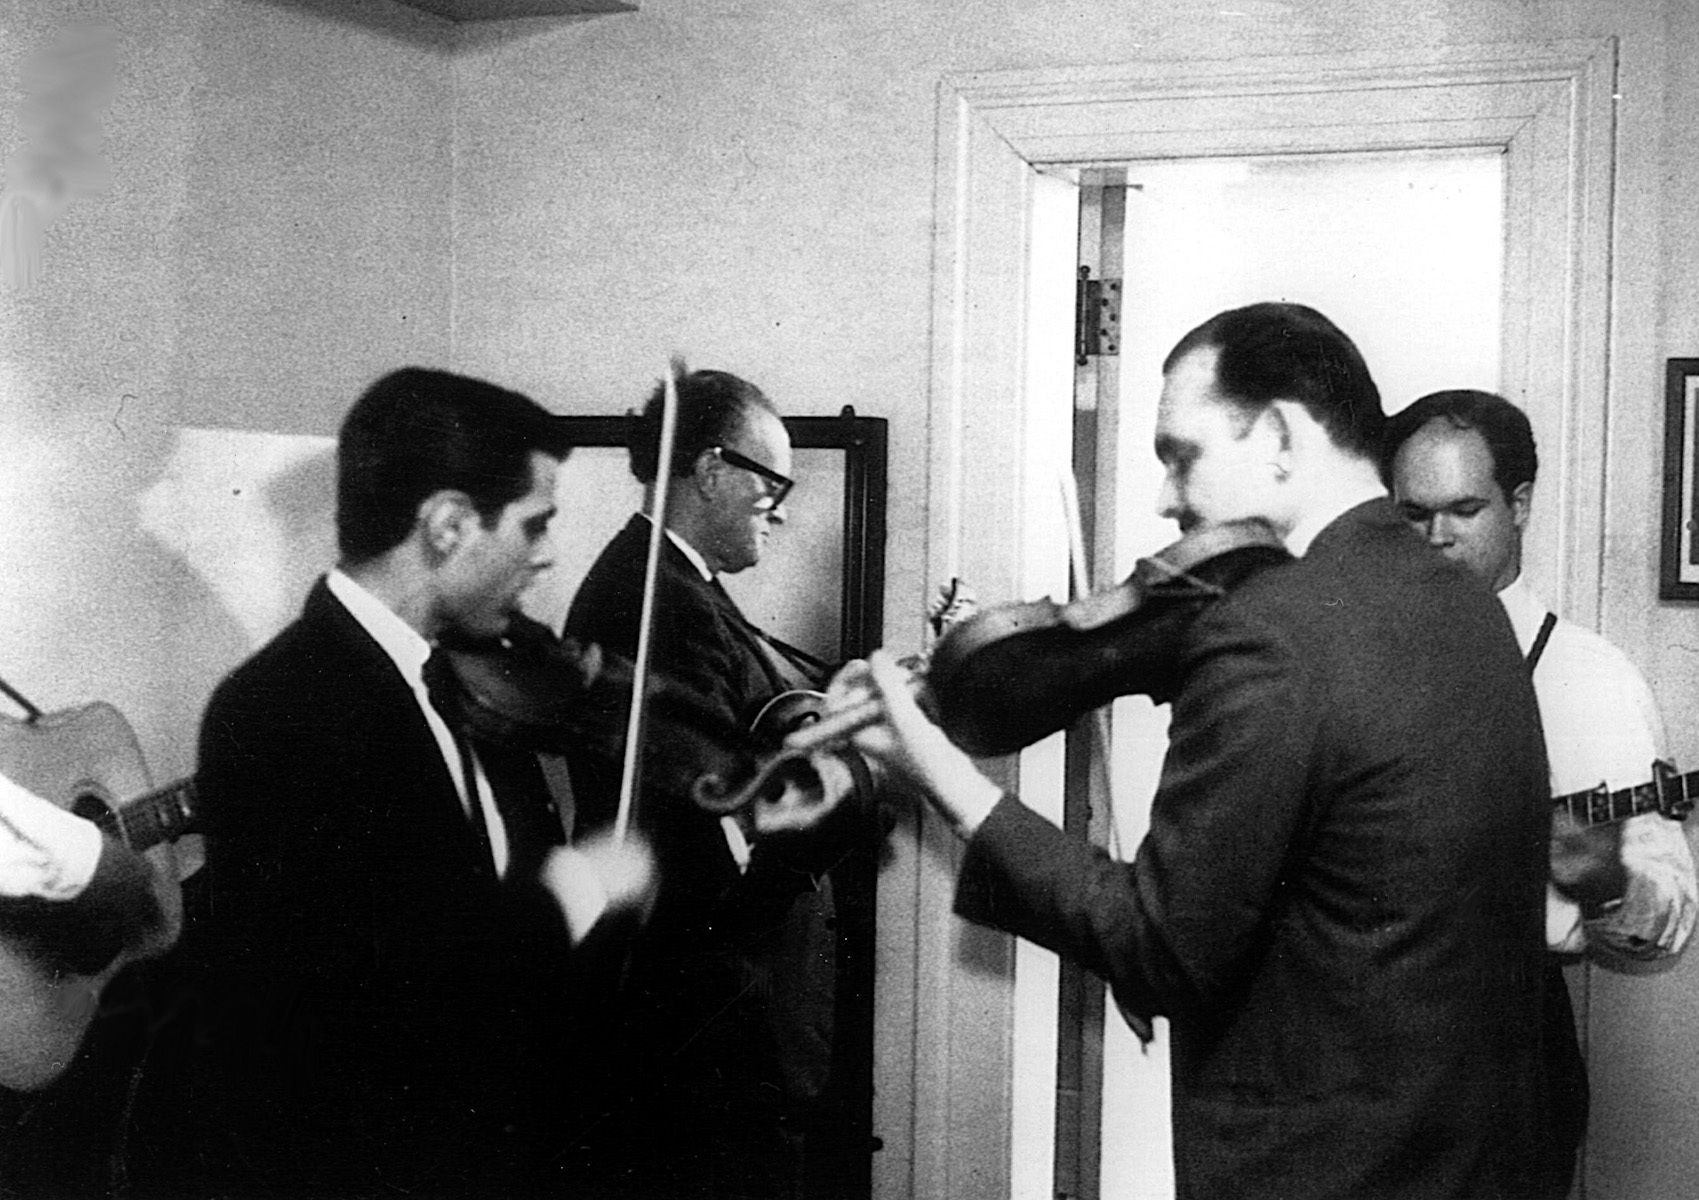 Backstage at Jordan Hall, Boston, 1964